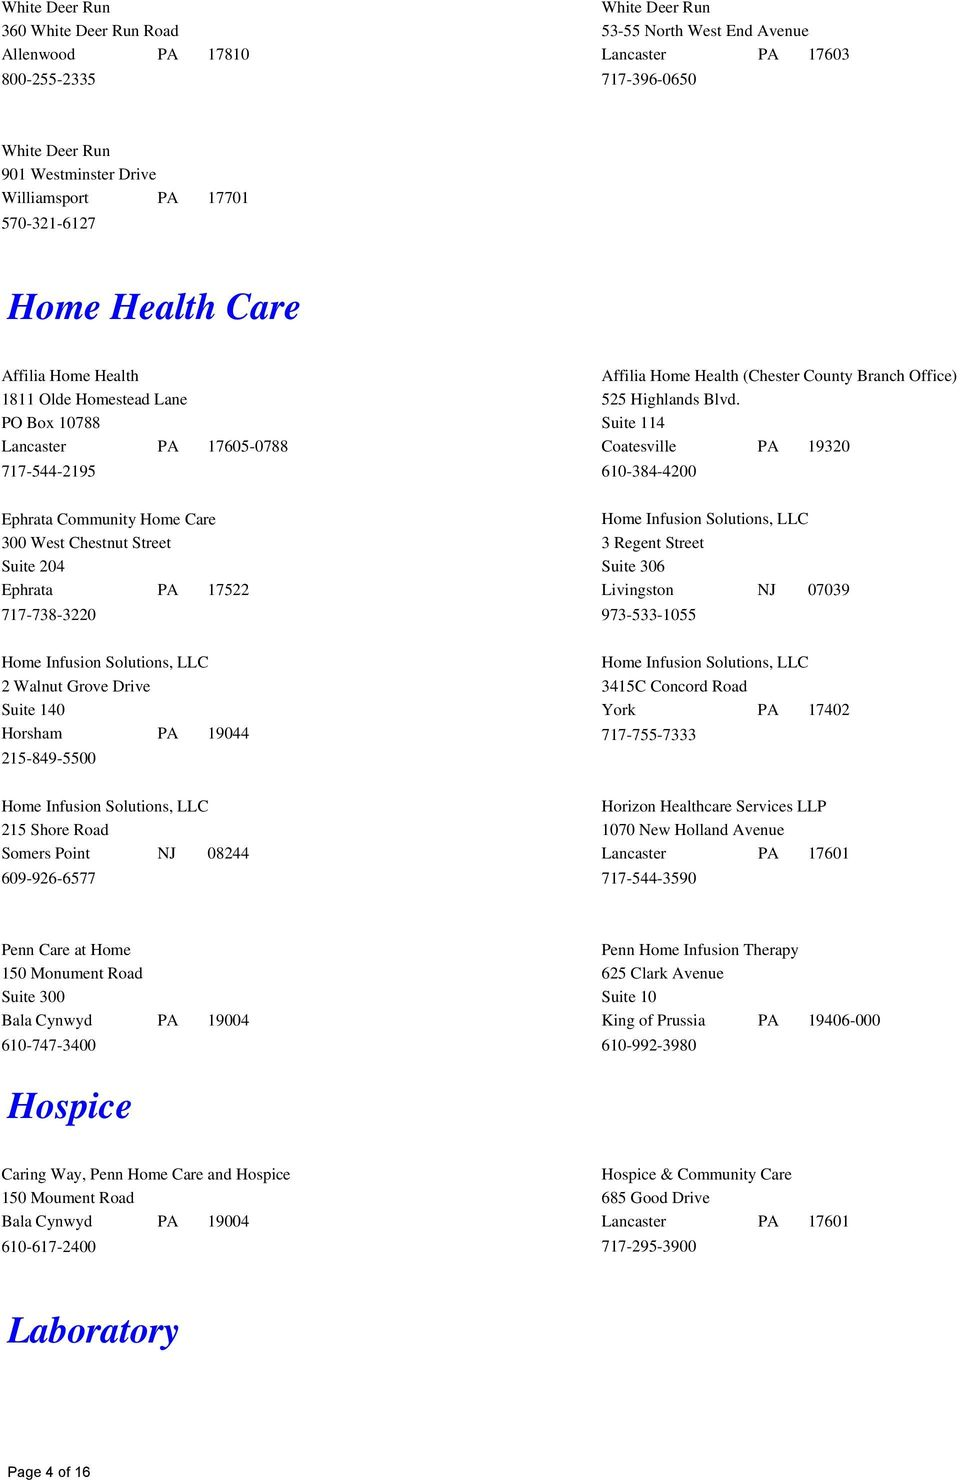 Suite 114 Coatesville PA 19320 610-384-4200 Ephrata Community Home Care 300 West Chestnut Street Suite 204 717-738-3220 Home Infusion Solutions, LLC 3 Regent Street Suite 306 Livingston NJ 07039